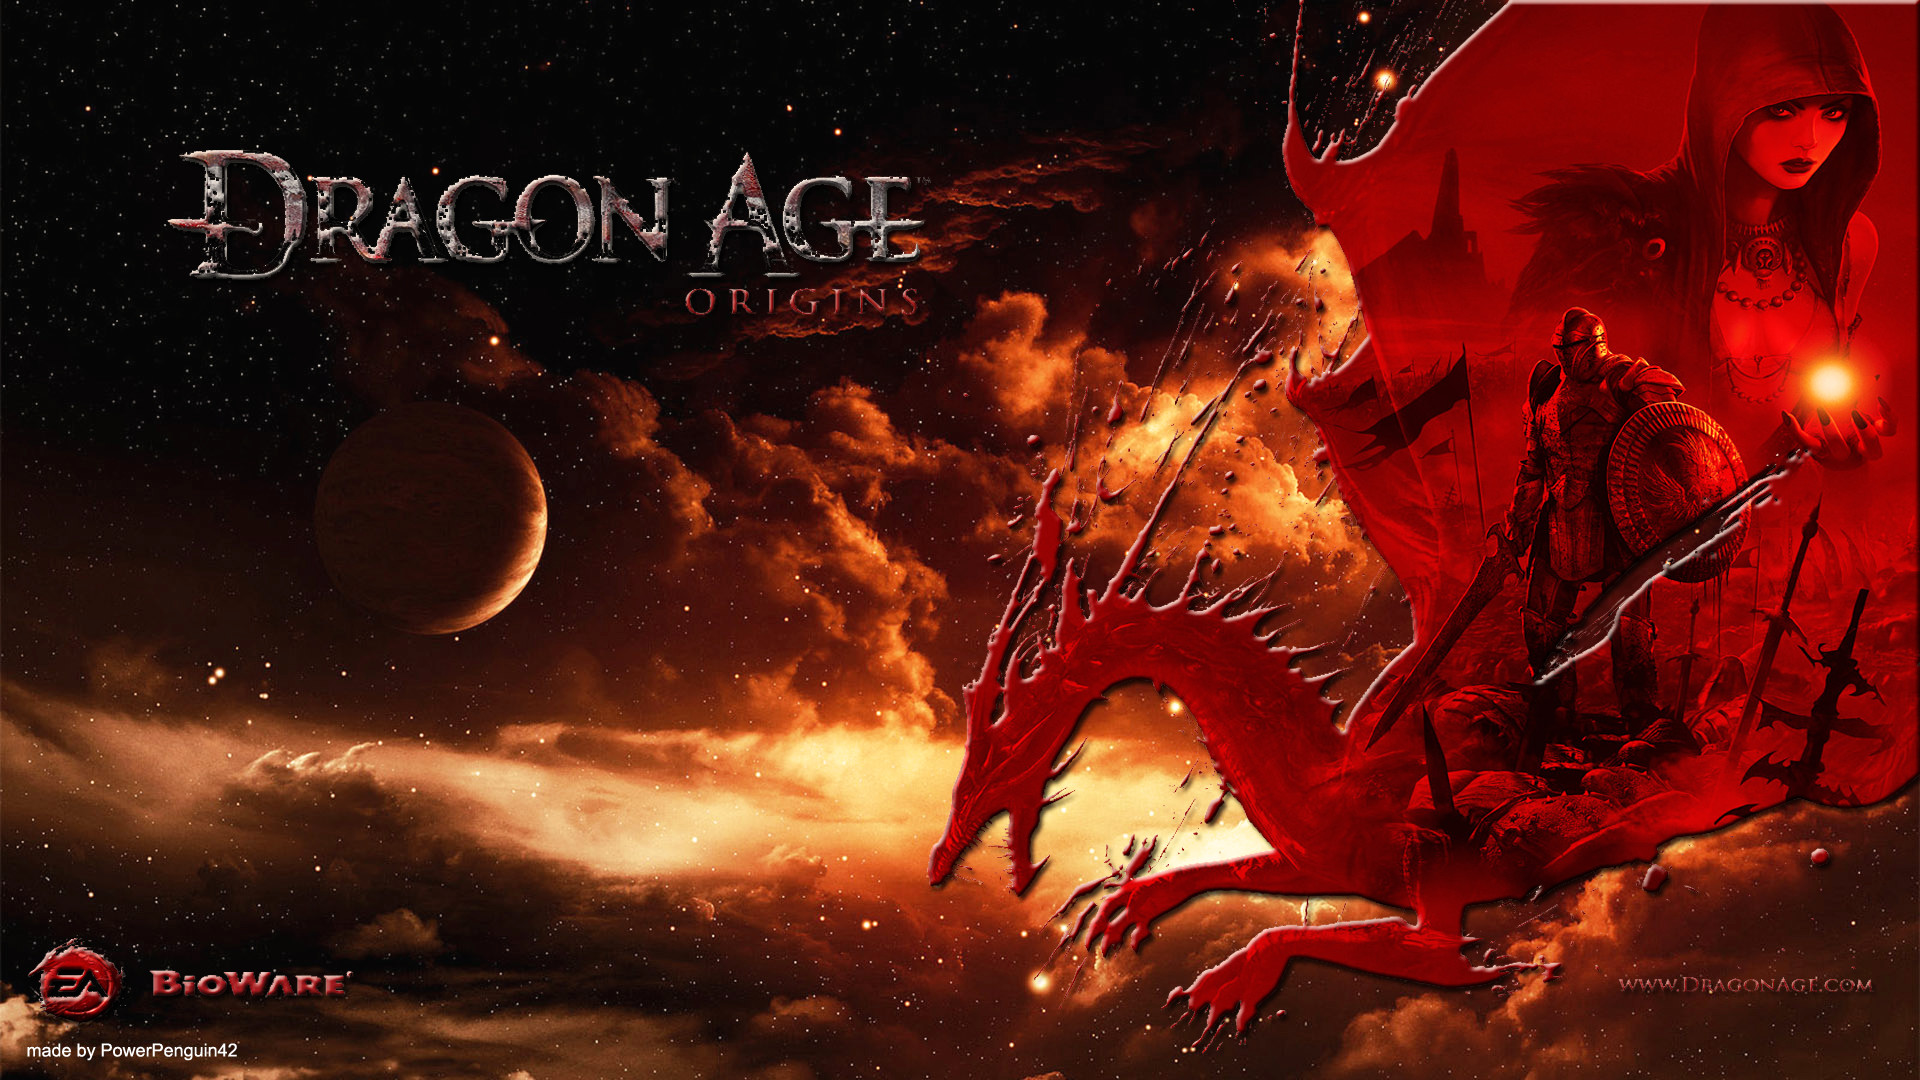 Dragon Age Origins Wallpapers: Dragon Age Origins Wallpaper (76+ Images